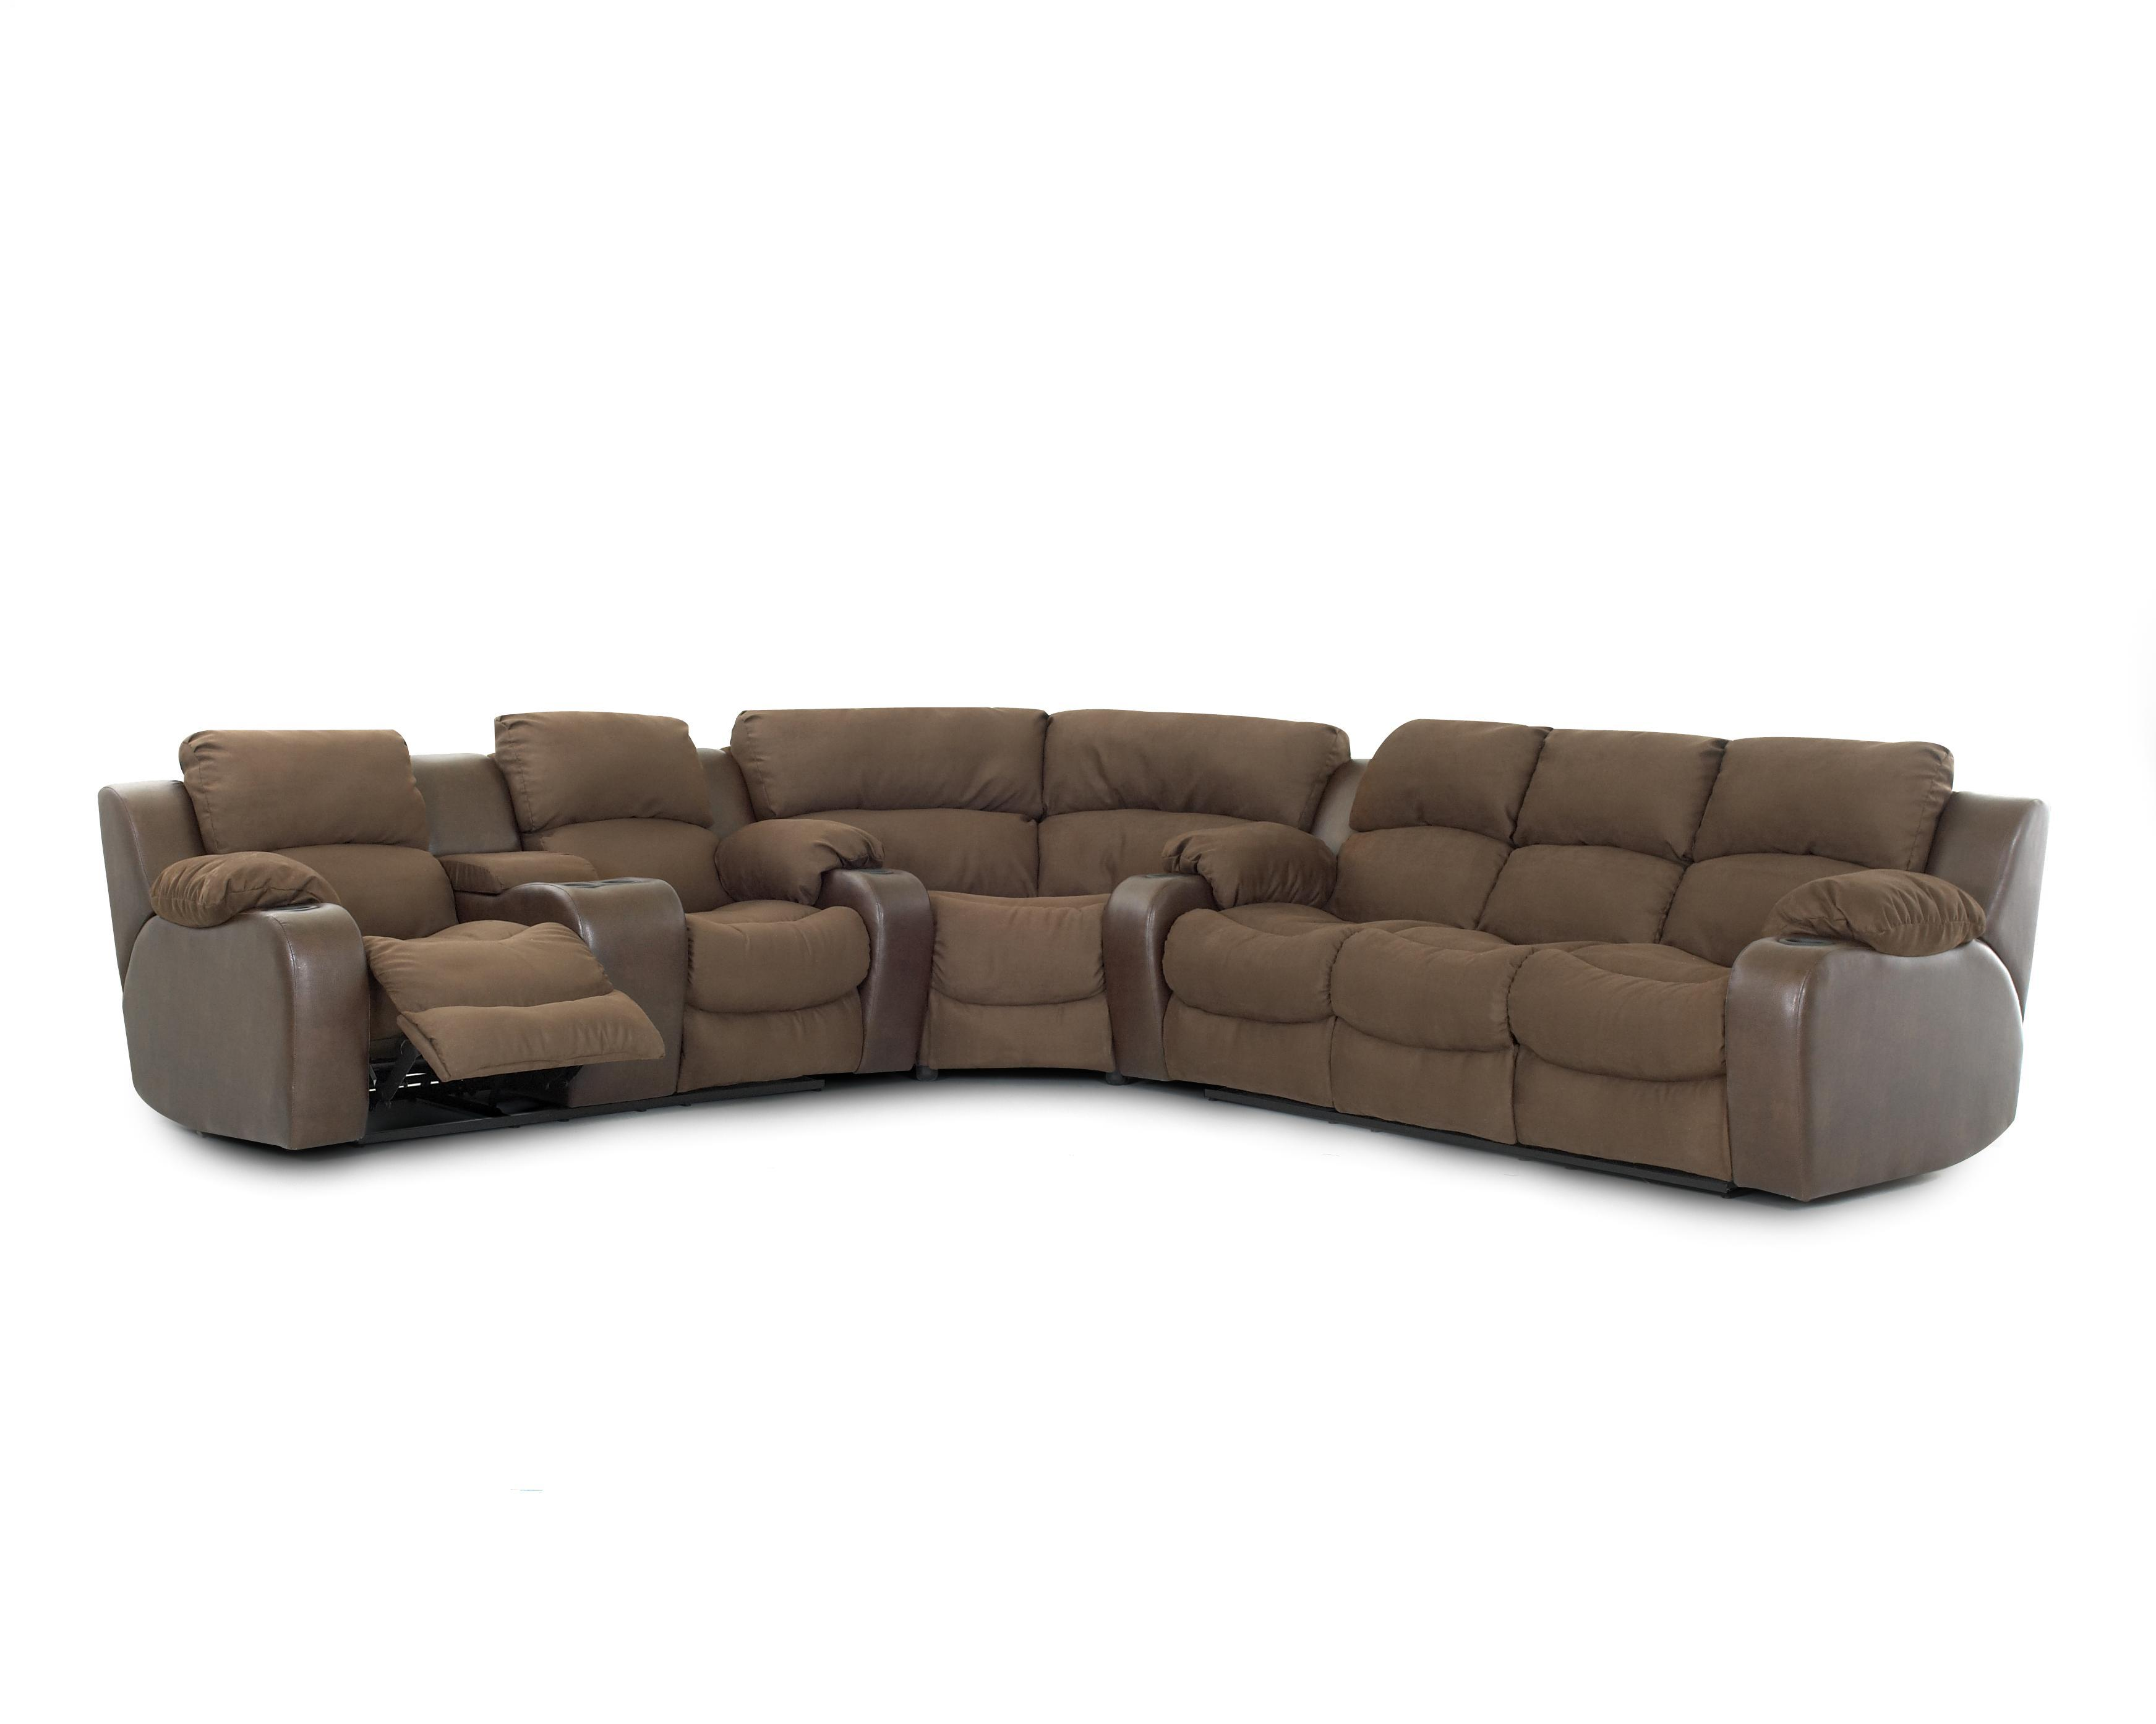 Reclining sofa with console best affordable sofa 17 best for Best affordable sofas